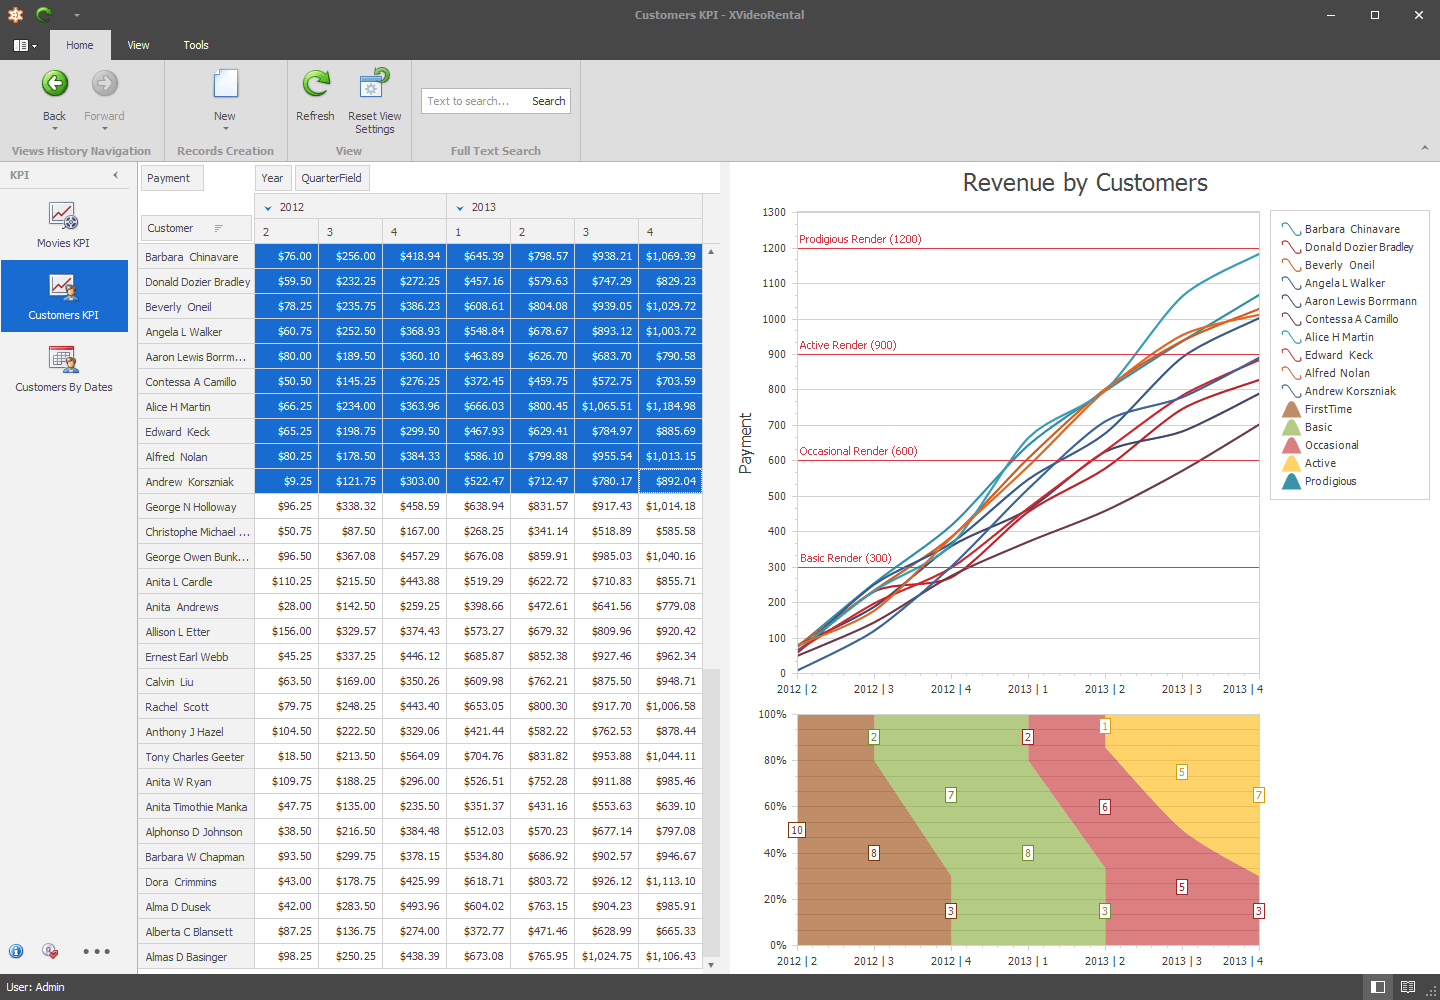 WinForms: Key Performance Indicators